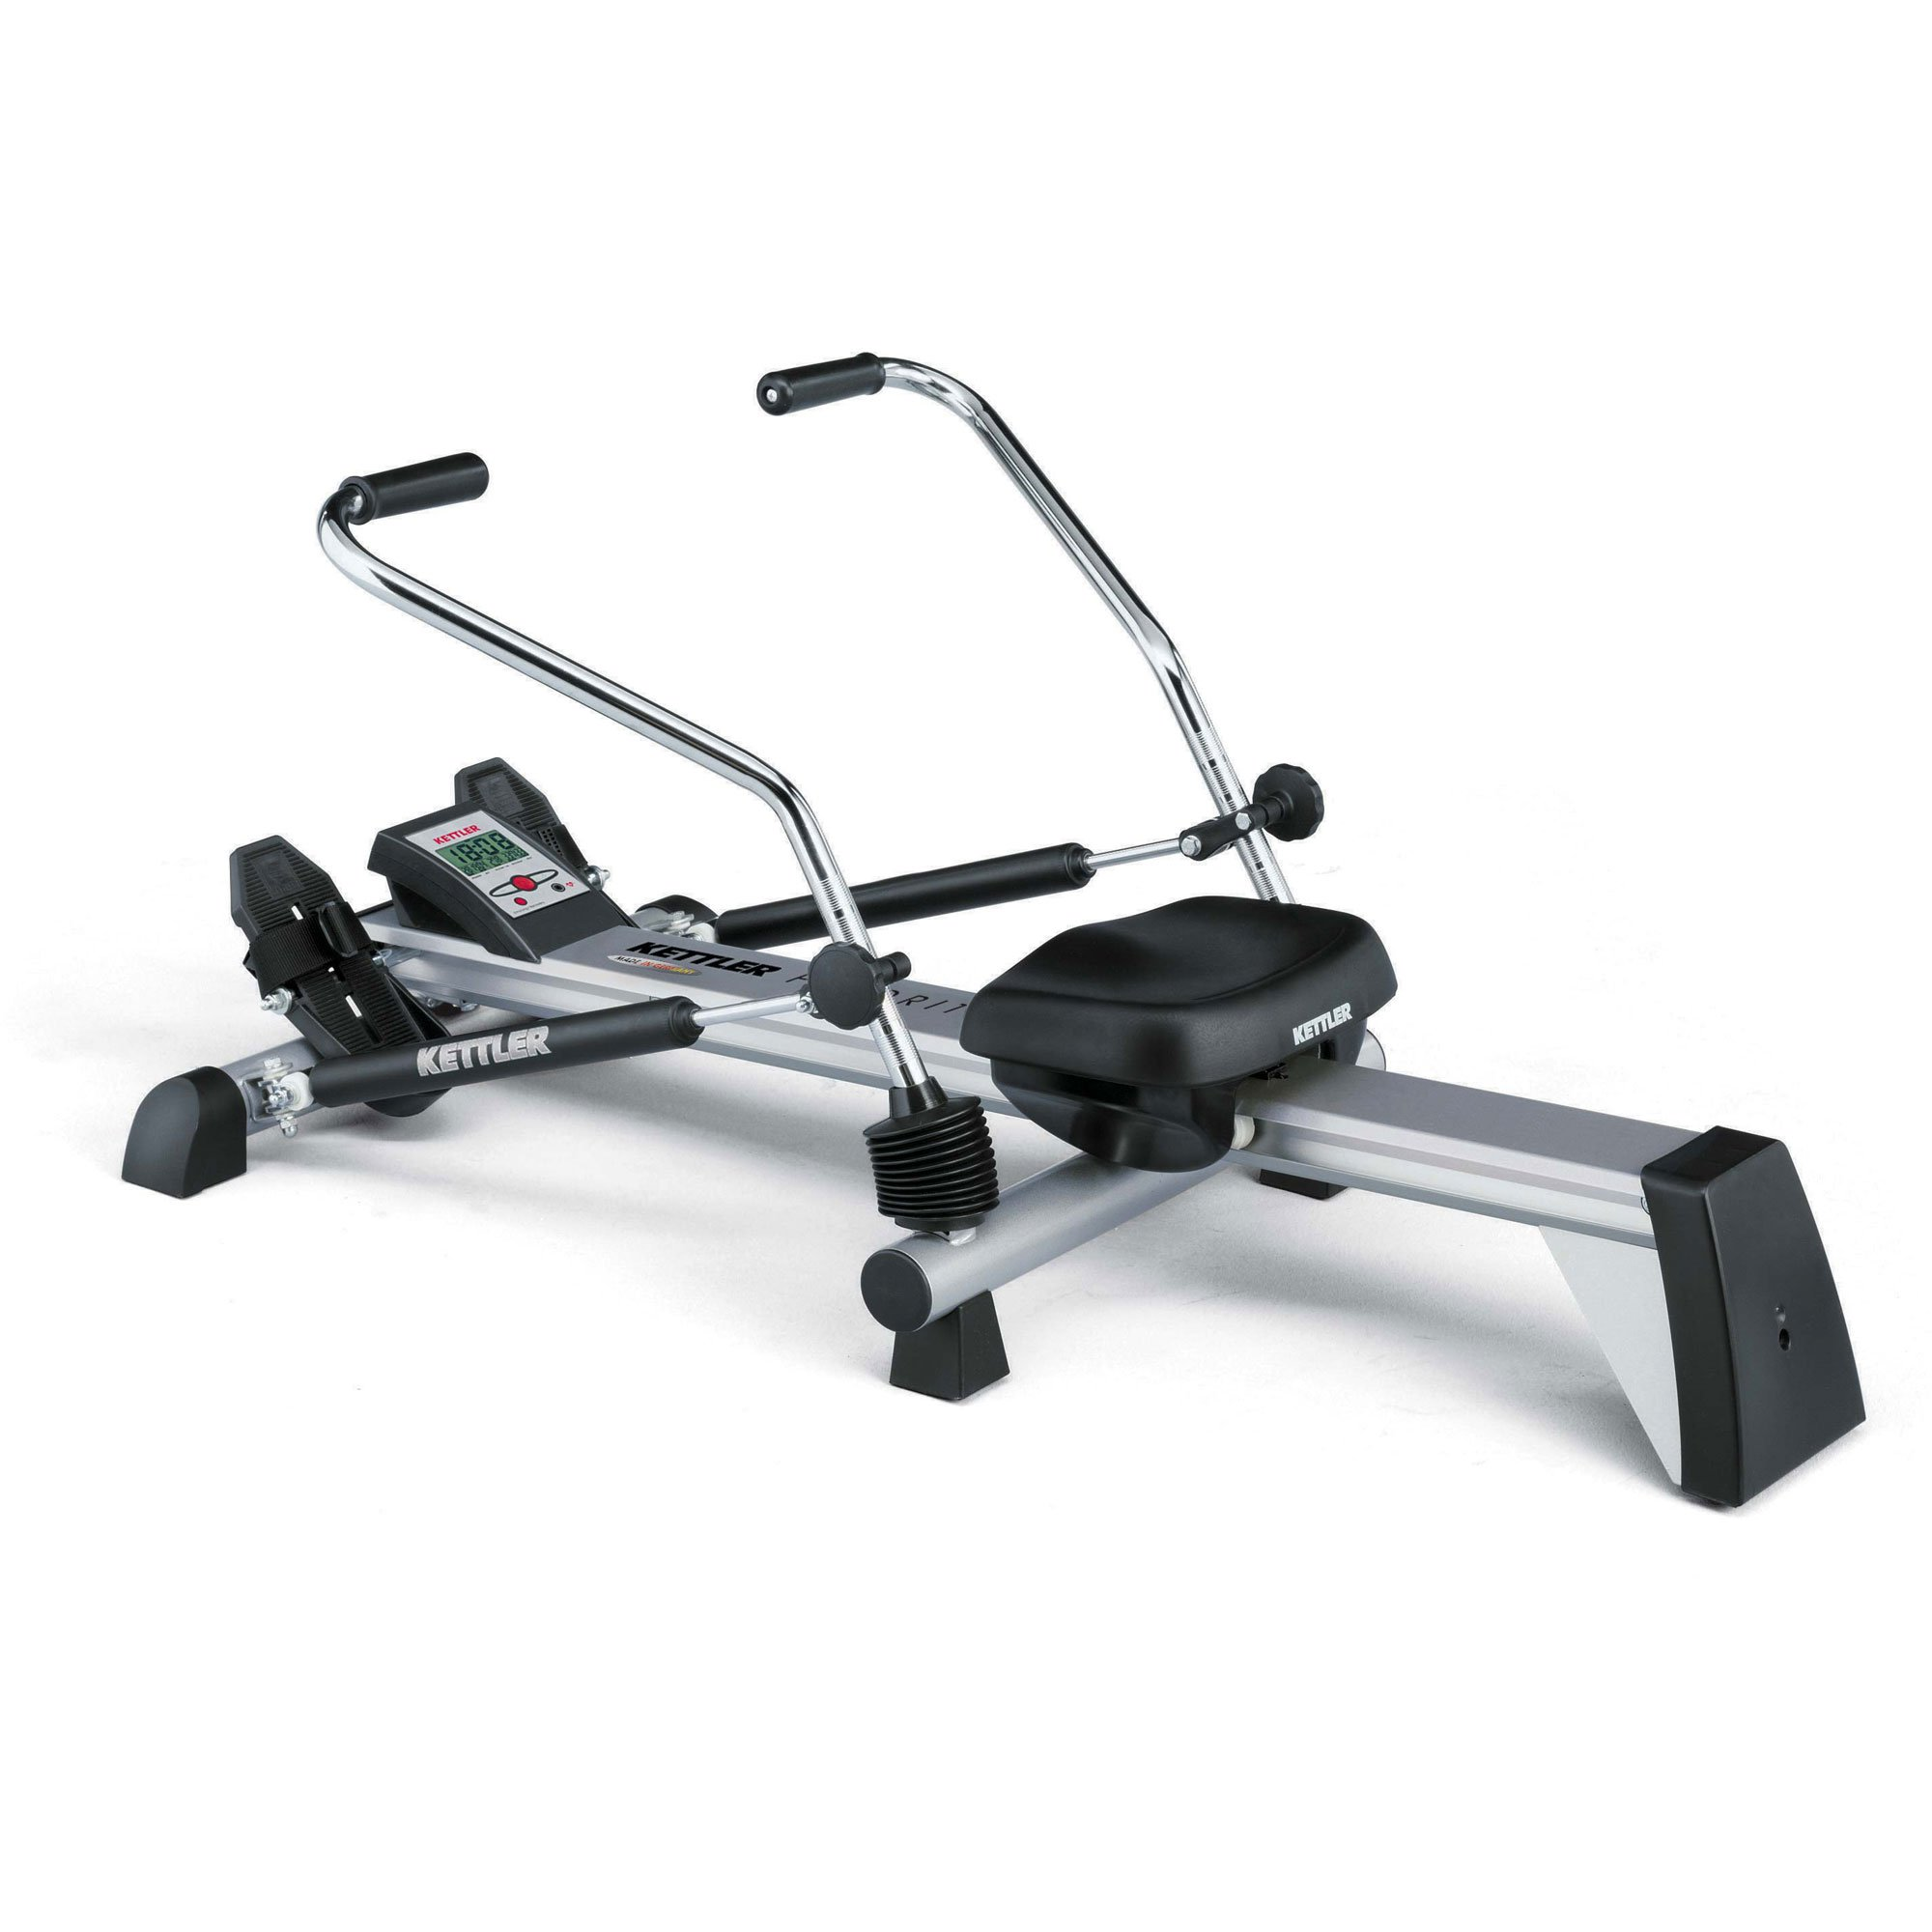 Kettler Home Exercise/Fitness Equipment: Favorit Rowing Machine